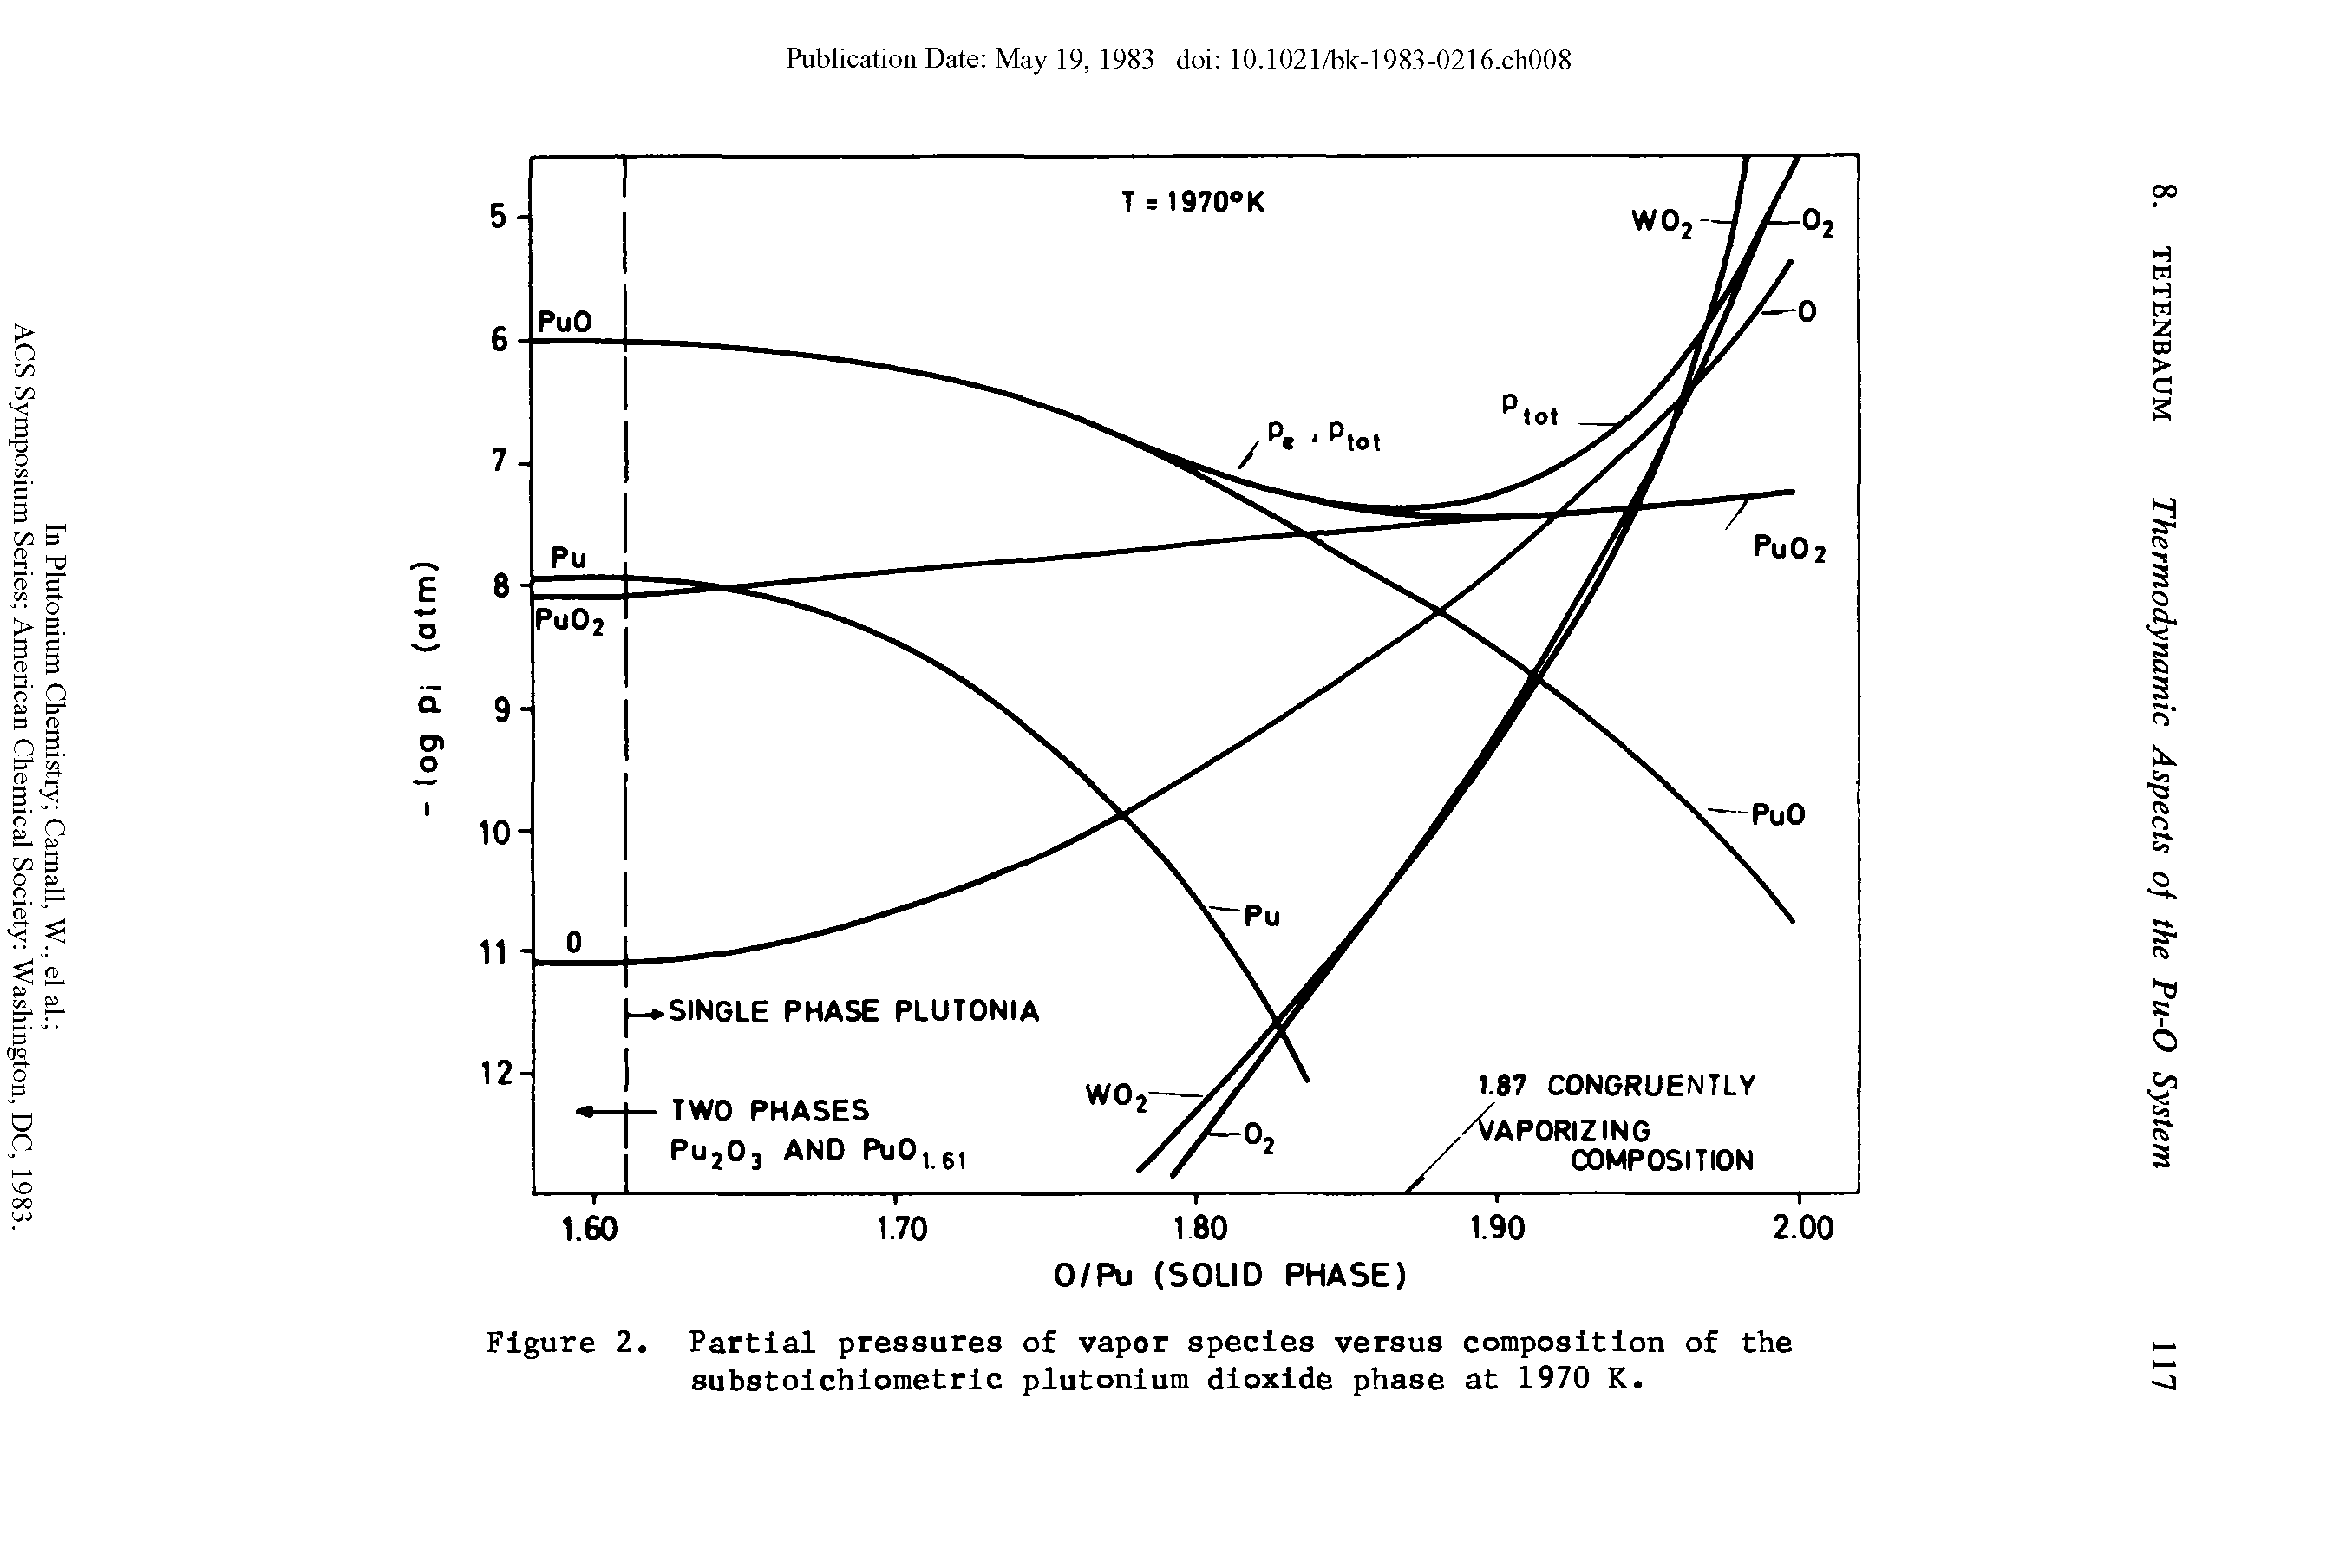 "Figure 2. <a href=""/info/partial_pressure_gas"">Partial pressures</a> of vapor species versus composition of the substoichiometric plutonium dioxide phase at 1970 K."